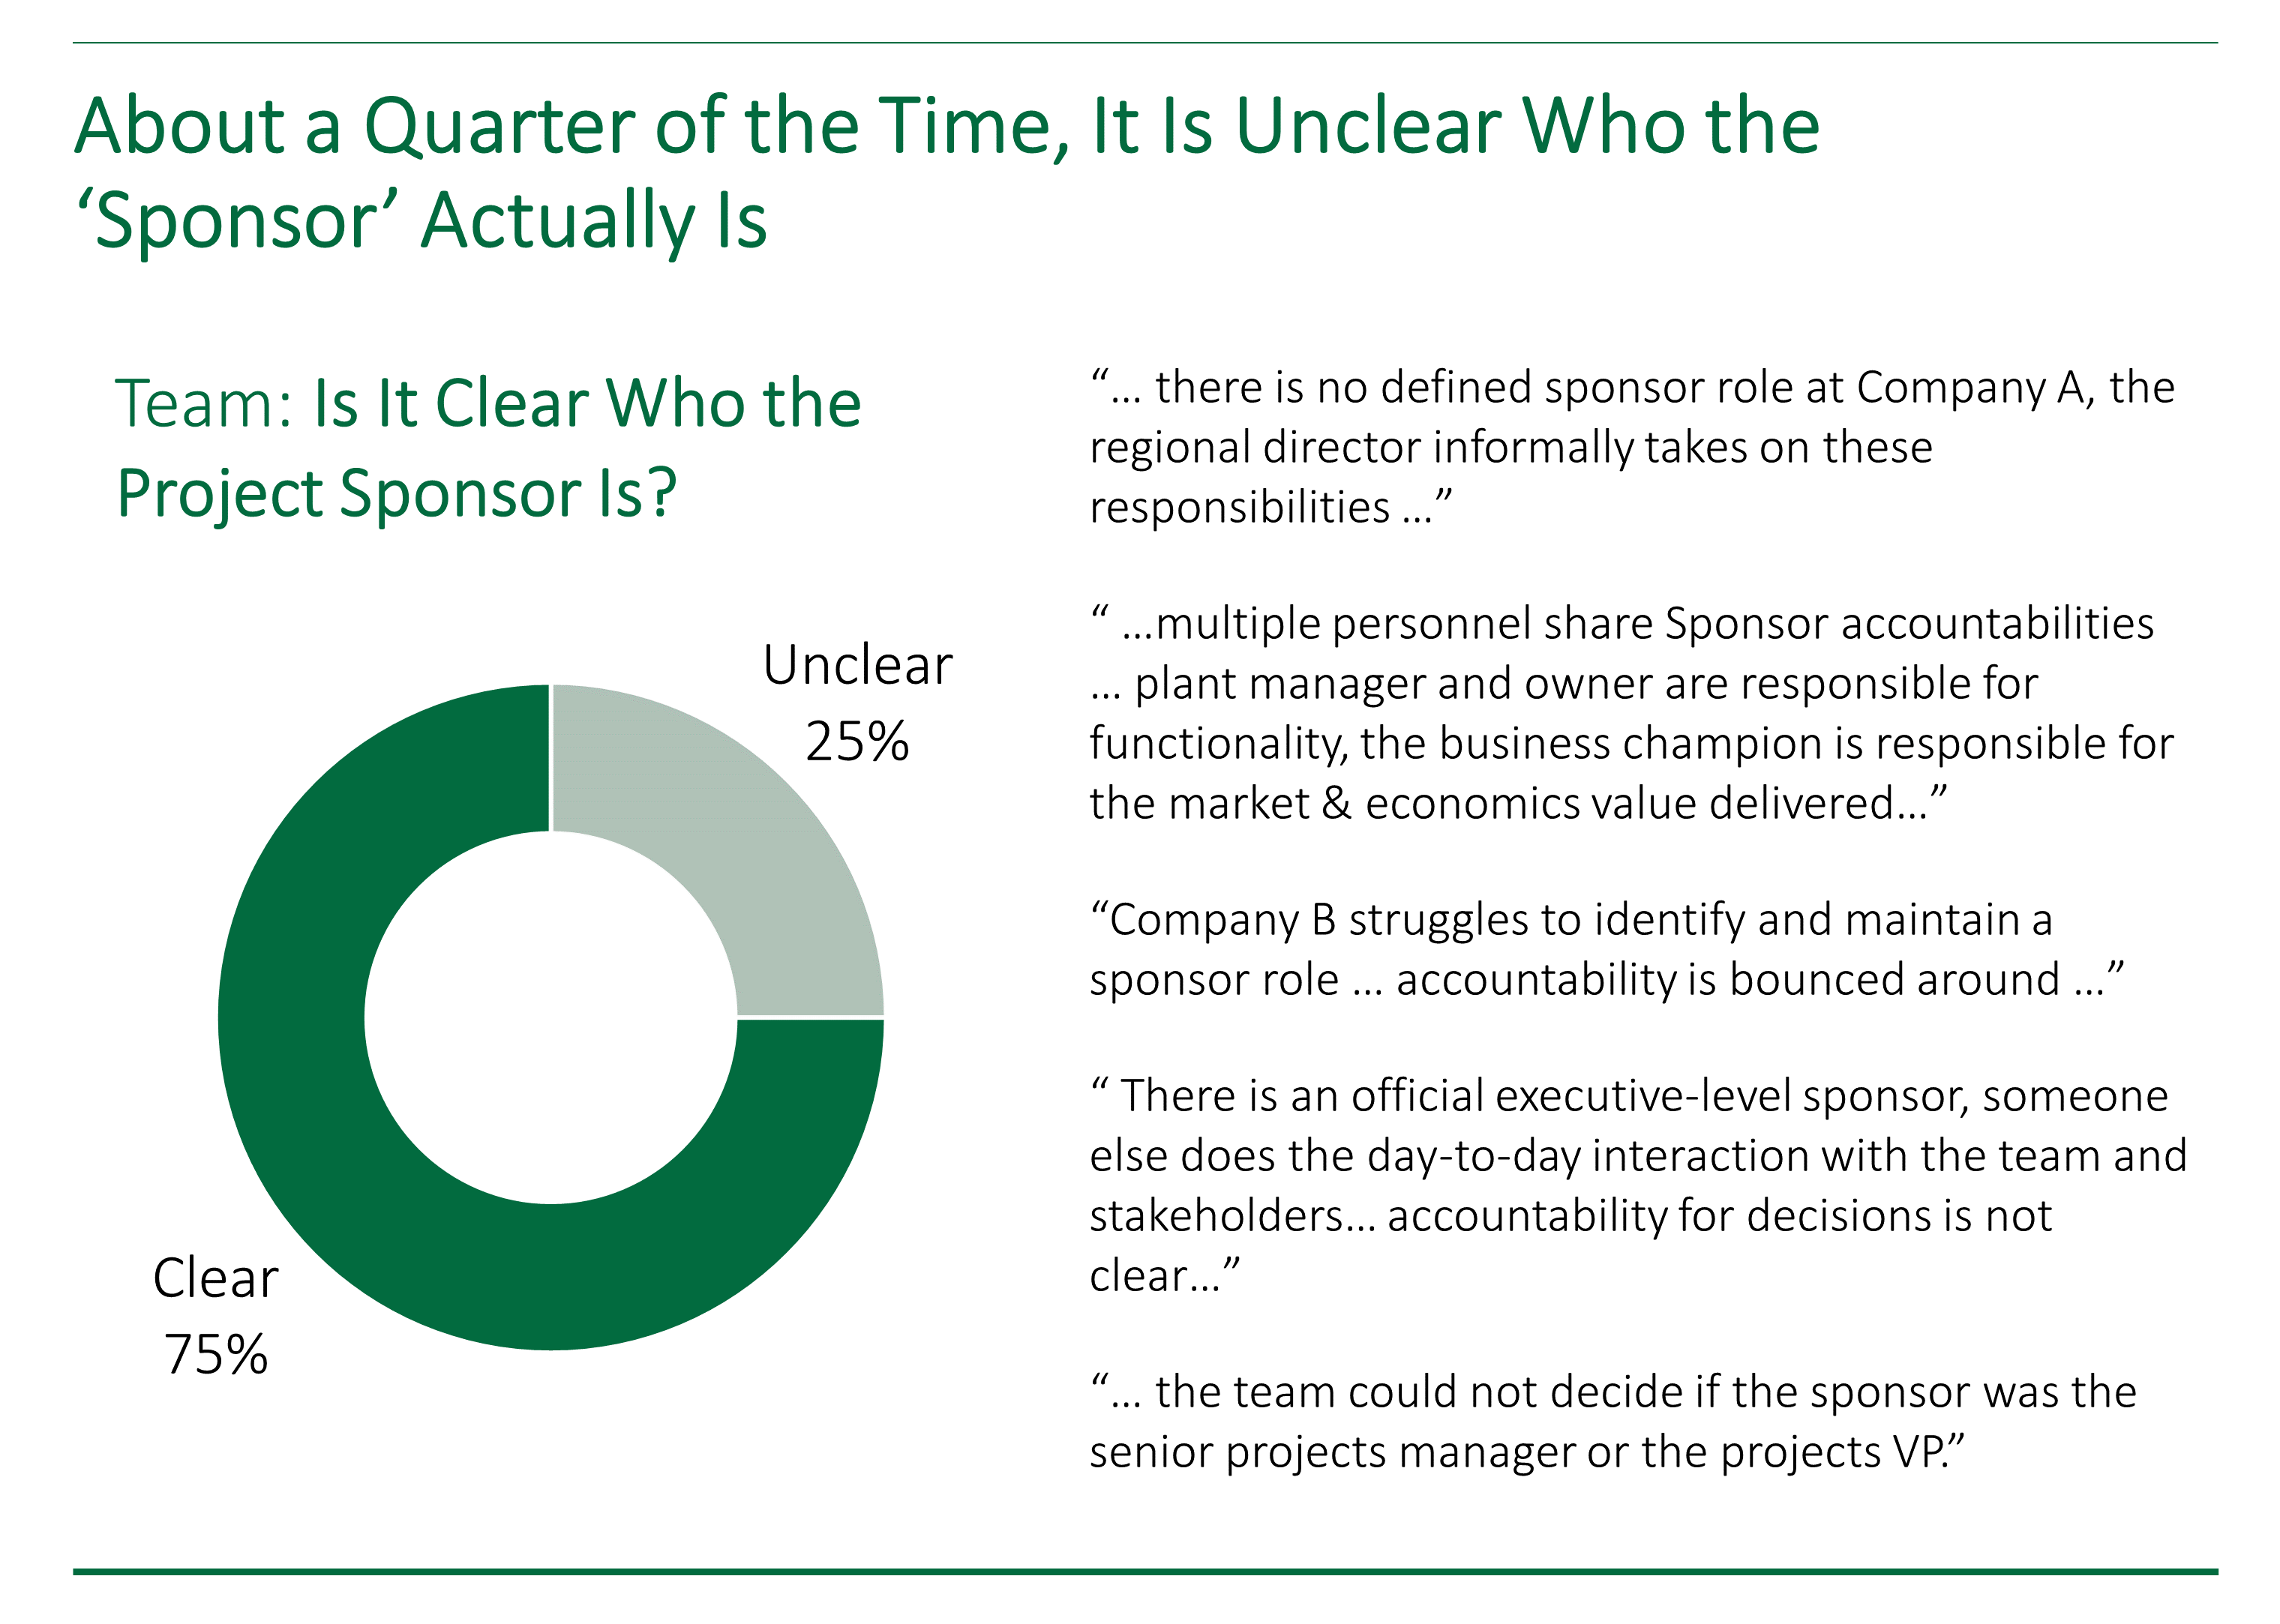 Donut chart showing that 25 percent of the time, project teams are unsure of who the project sponsor is.